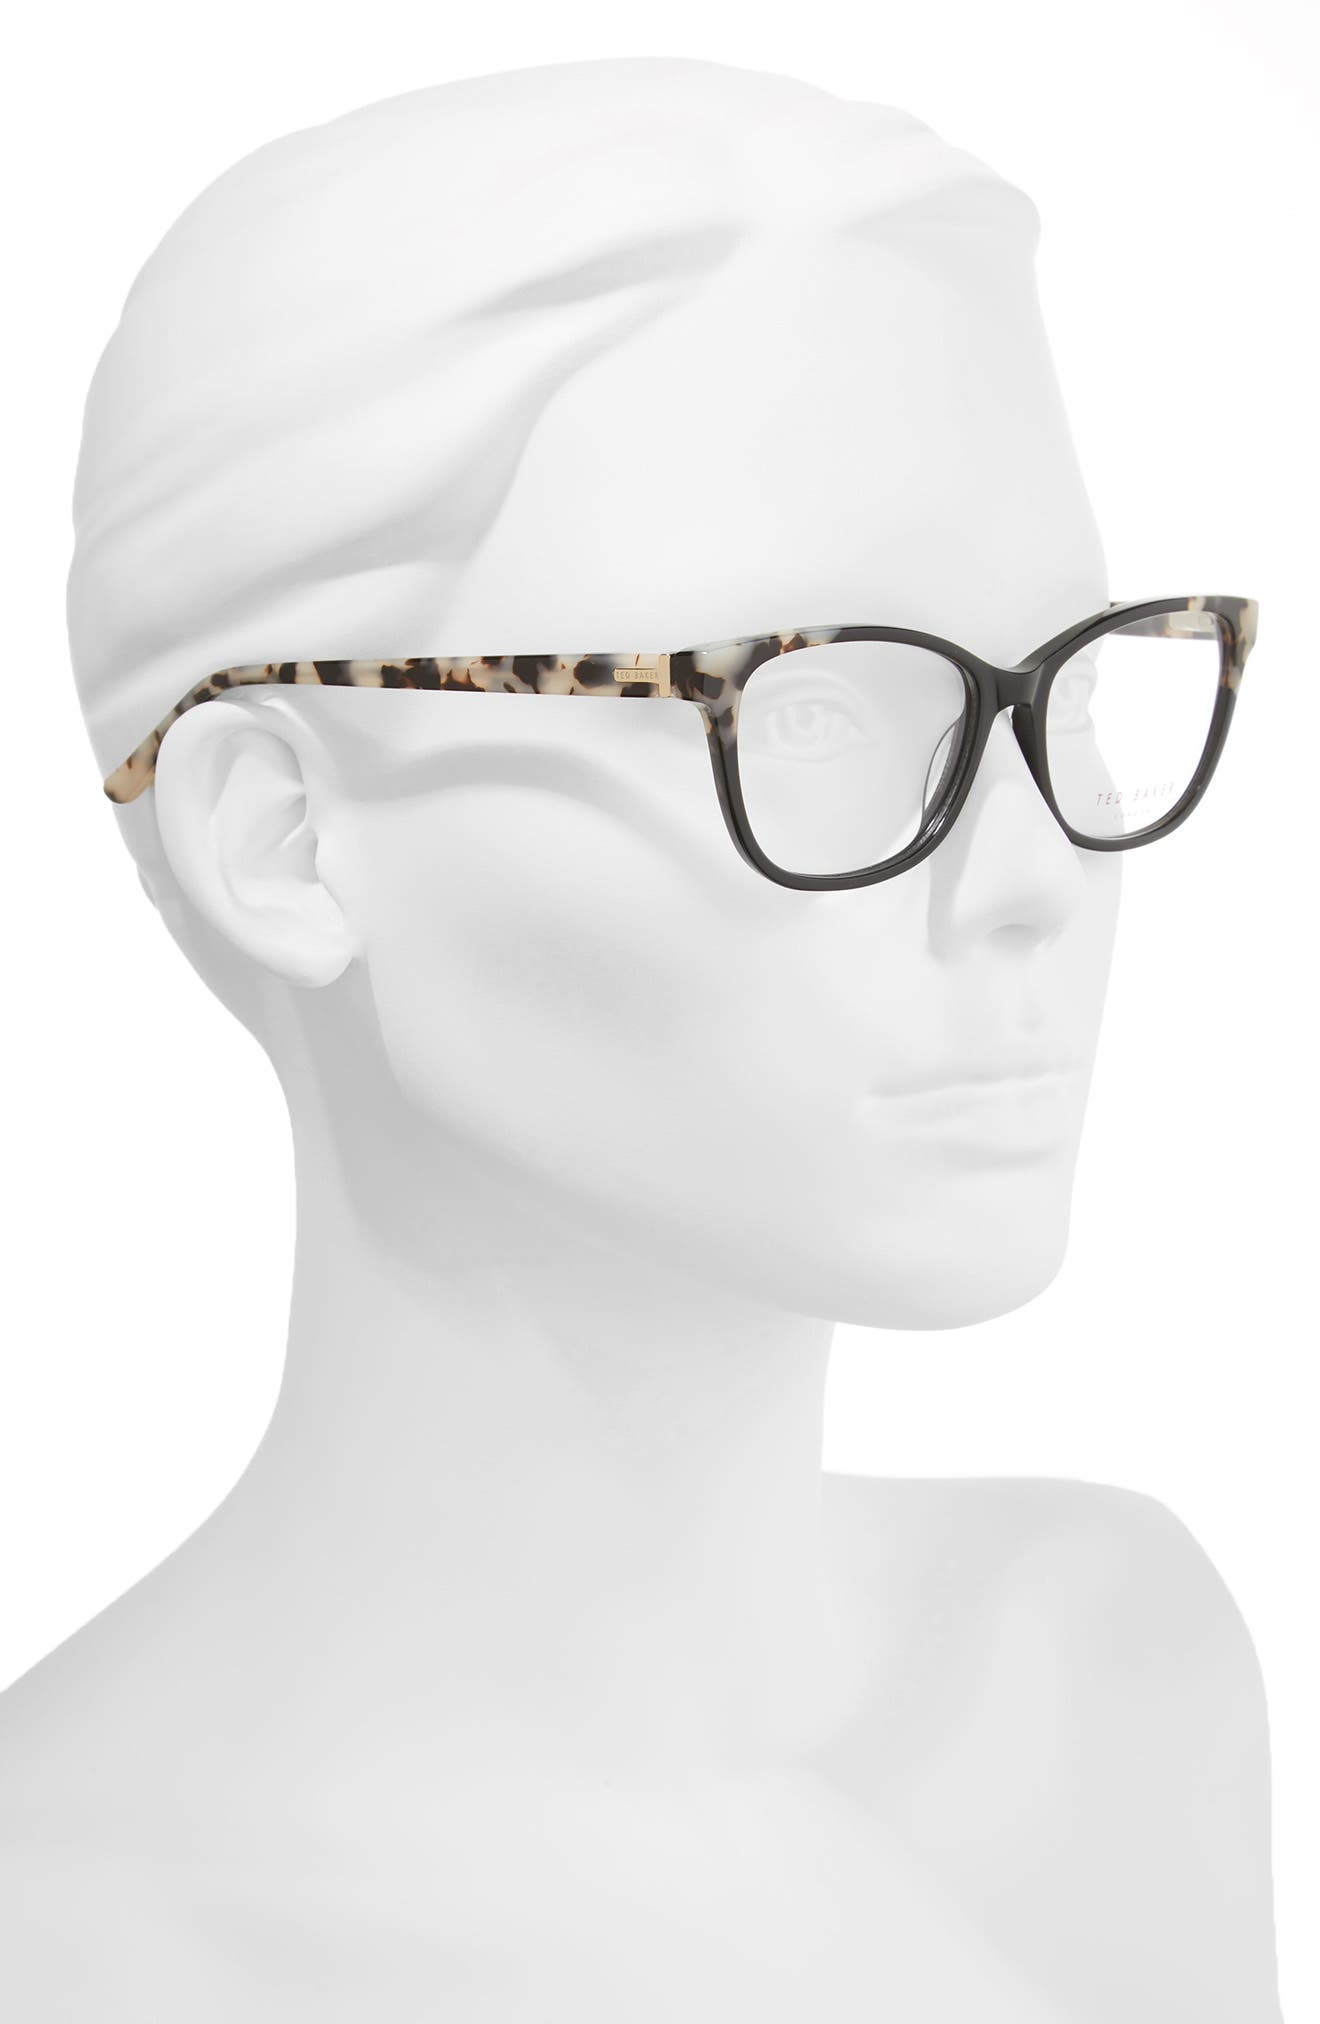 52mm Square Optical Glasses,                             Alternate thumbnail 2, color,